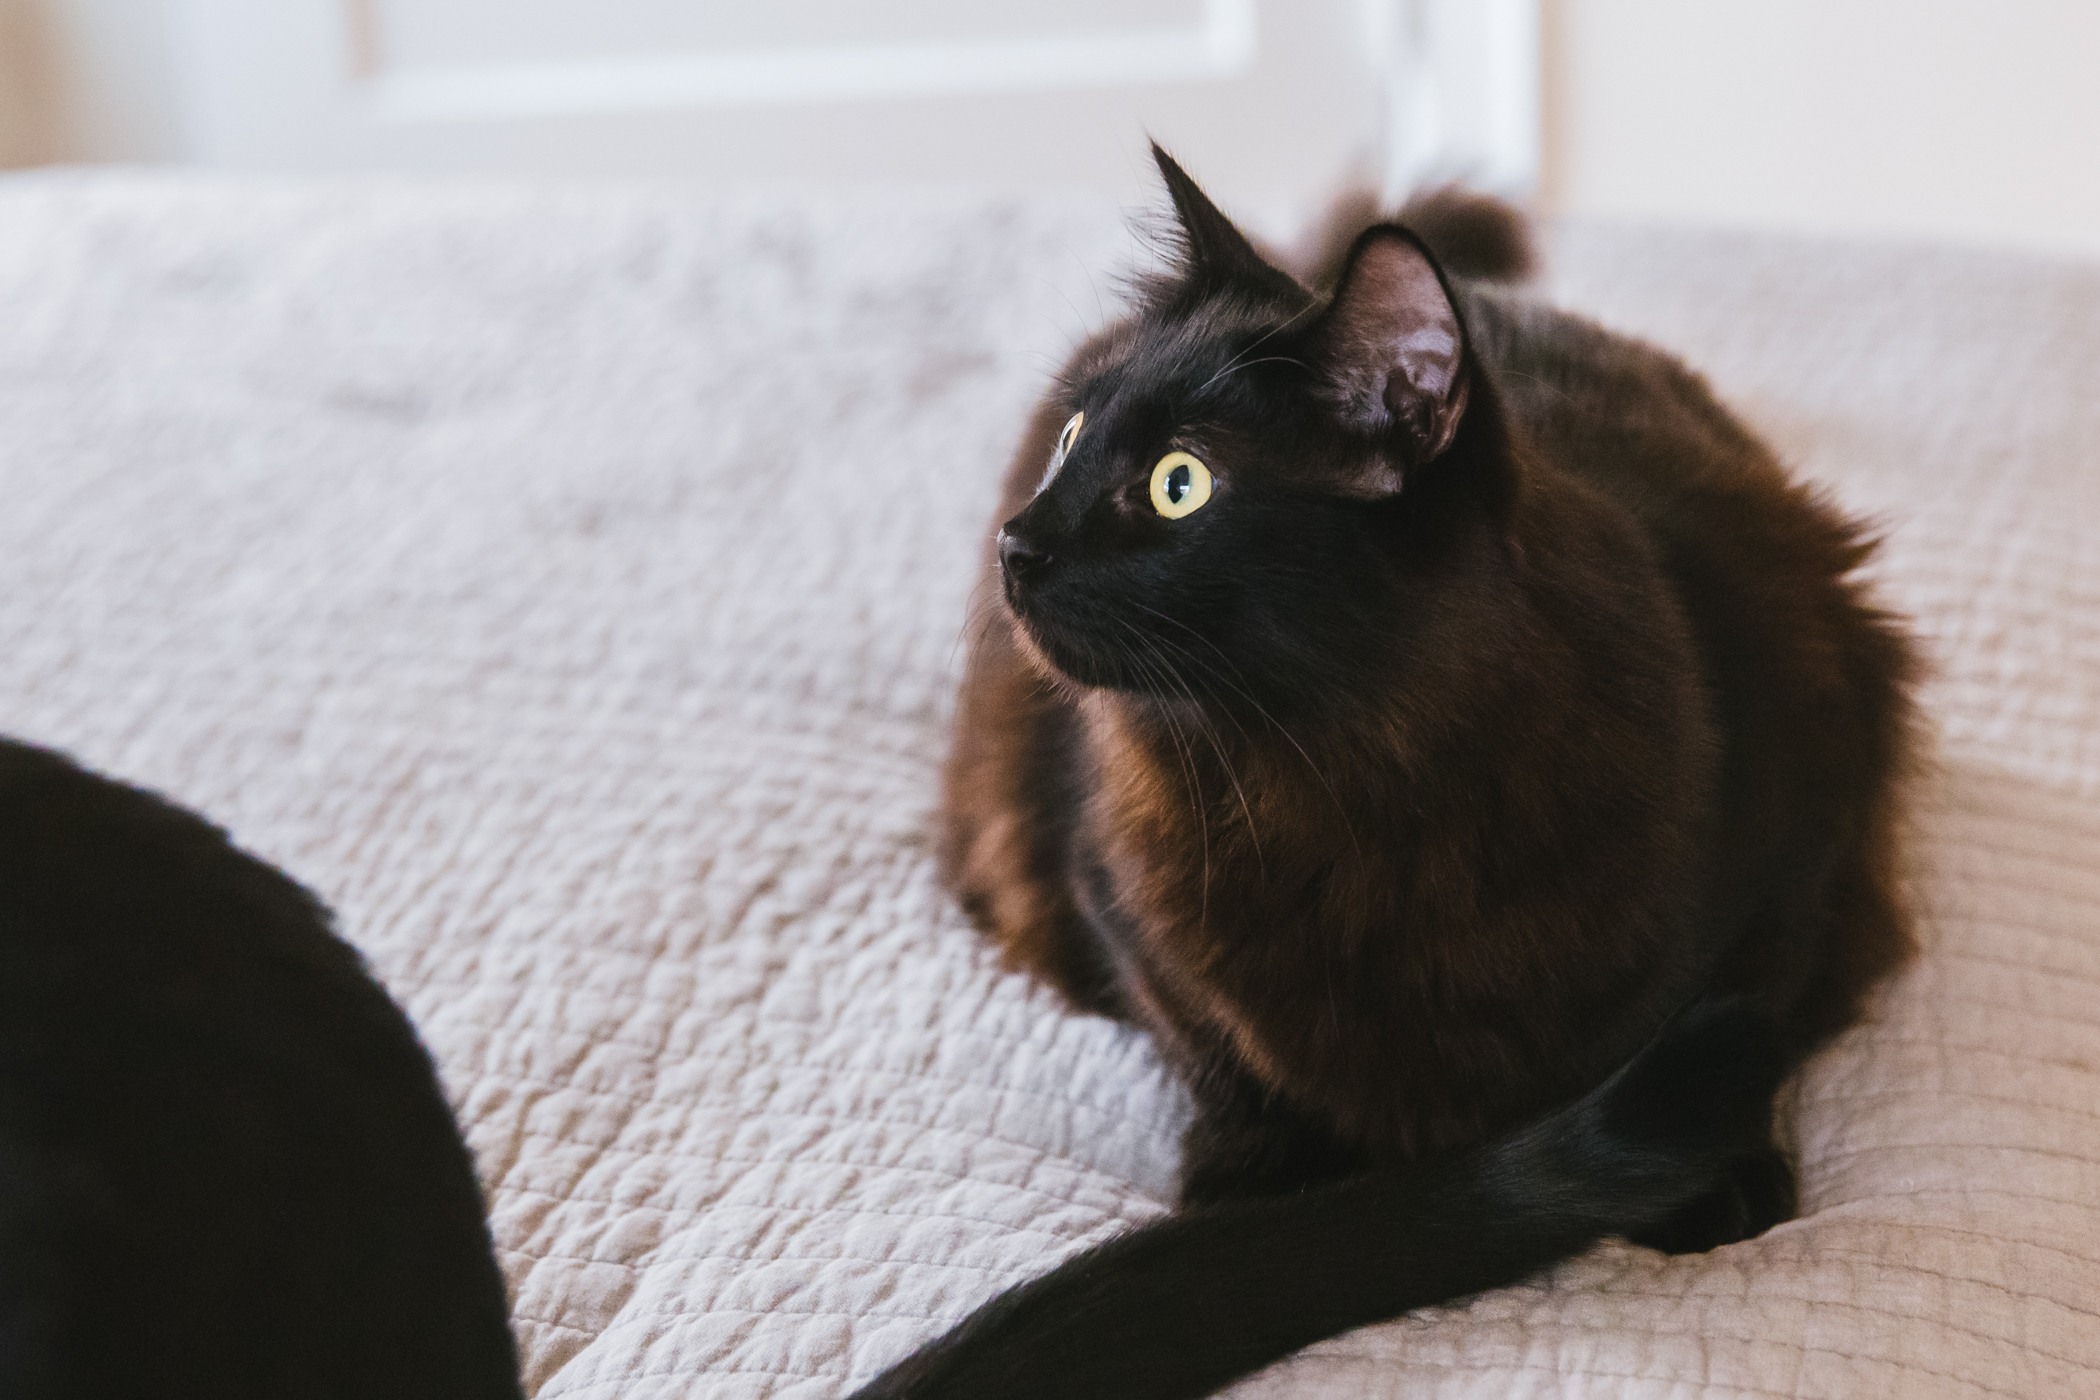 "Bruce is a 10-month-old ""floofy bear,"" roly-poly beachball of a kitten adopted from{&nbsp;}<a  href=""https://www.instagram.com/motleyzoocrew/"" target=""_blank"" title=""https://www.instagram.com/motleyzoocrew/"">Motley Zoo Animal Rescue</a>{&nbsp;}on the eve of quarantine. Bruce loves wrestling with his brother,{&nbsp;}Thor, spooning and climbing to the top of everything.{&nbsp;}On any given day, you'll find Bruce napping in his favorite hiding spot or jumping fearlessly from the top of the cat tree — usually for snacks. He loves all things edible and hates rules (and the vacuum).{&nbsp;}<a  href=""http://seattlerefined.com/ruffined"" target=""_blank"" title=""http://seattlerefined.com/ruffined"">The RUFFined Spotlight</a>{&nbsp;}is a weekly profile of local pets living and loving life in the PNW. If you or someone you know has a pet you'd like featured, email us at{&nbsp;}<a  href=""mailto:hello@seattlerefined.com"" target=""_blank"" title=""mailto:hello@seattlerefined.com"">hello@seattlerefined.com</a>, and your furbaby could be the next spotlighted! (Image: Sunita Martini / Seattle Refined)"